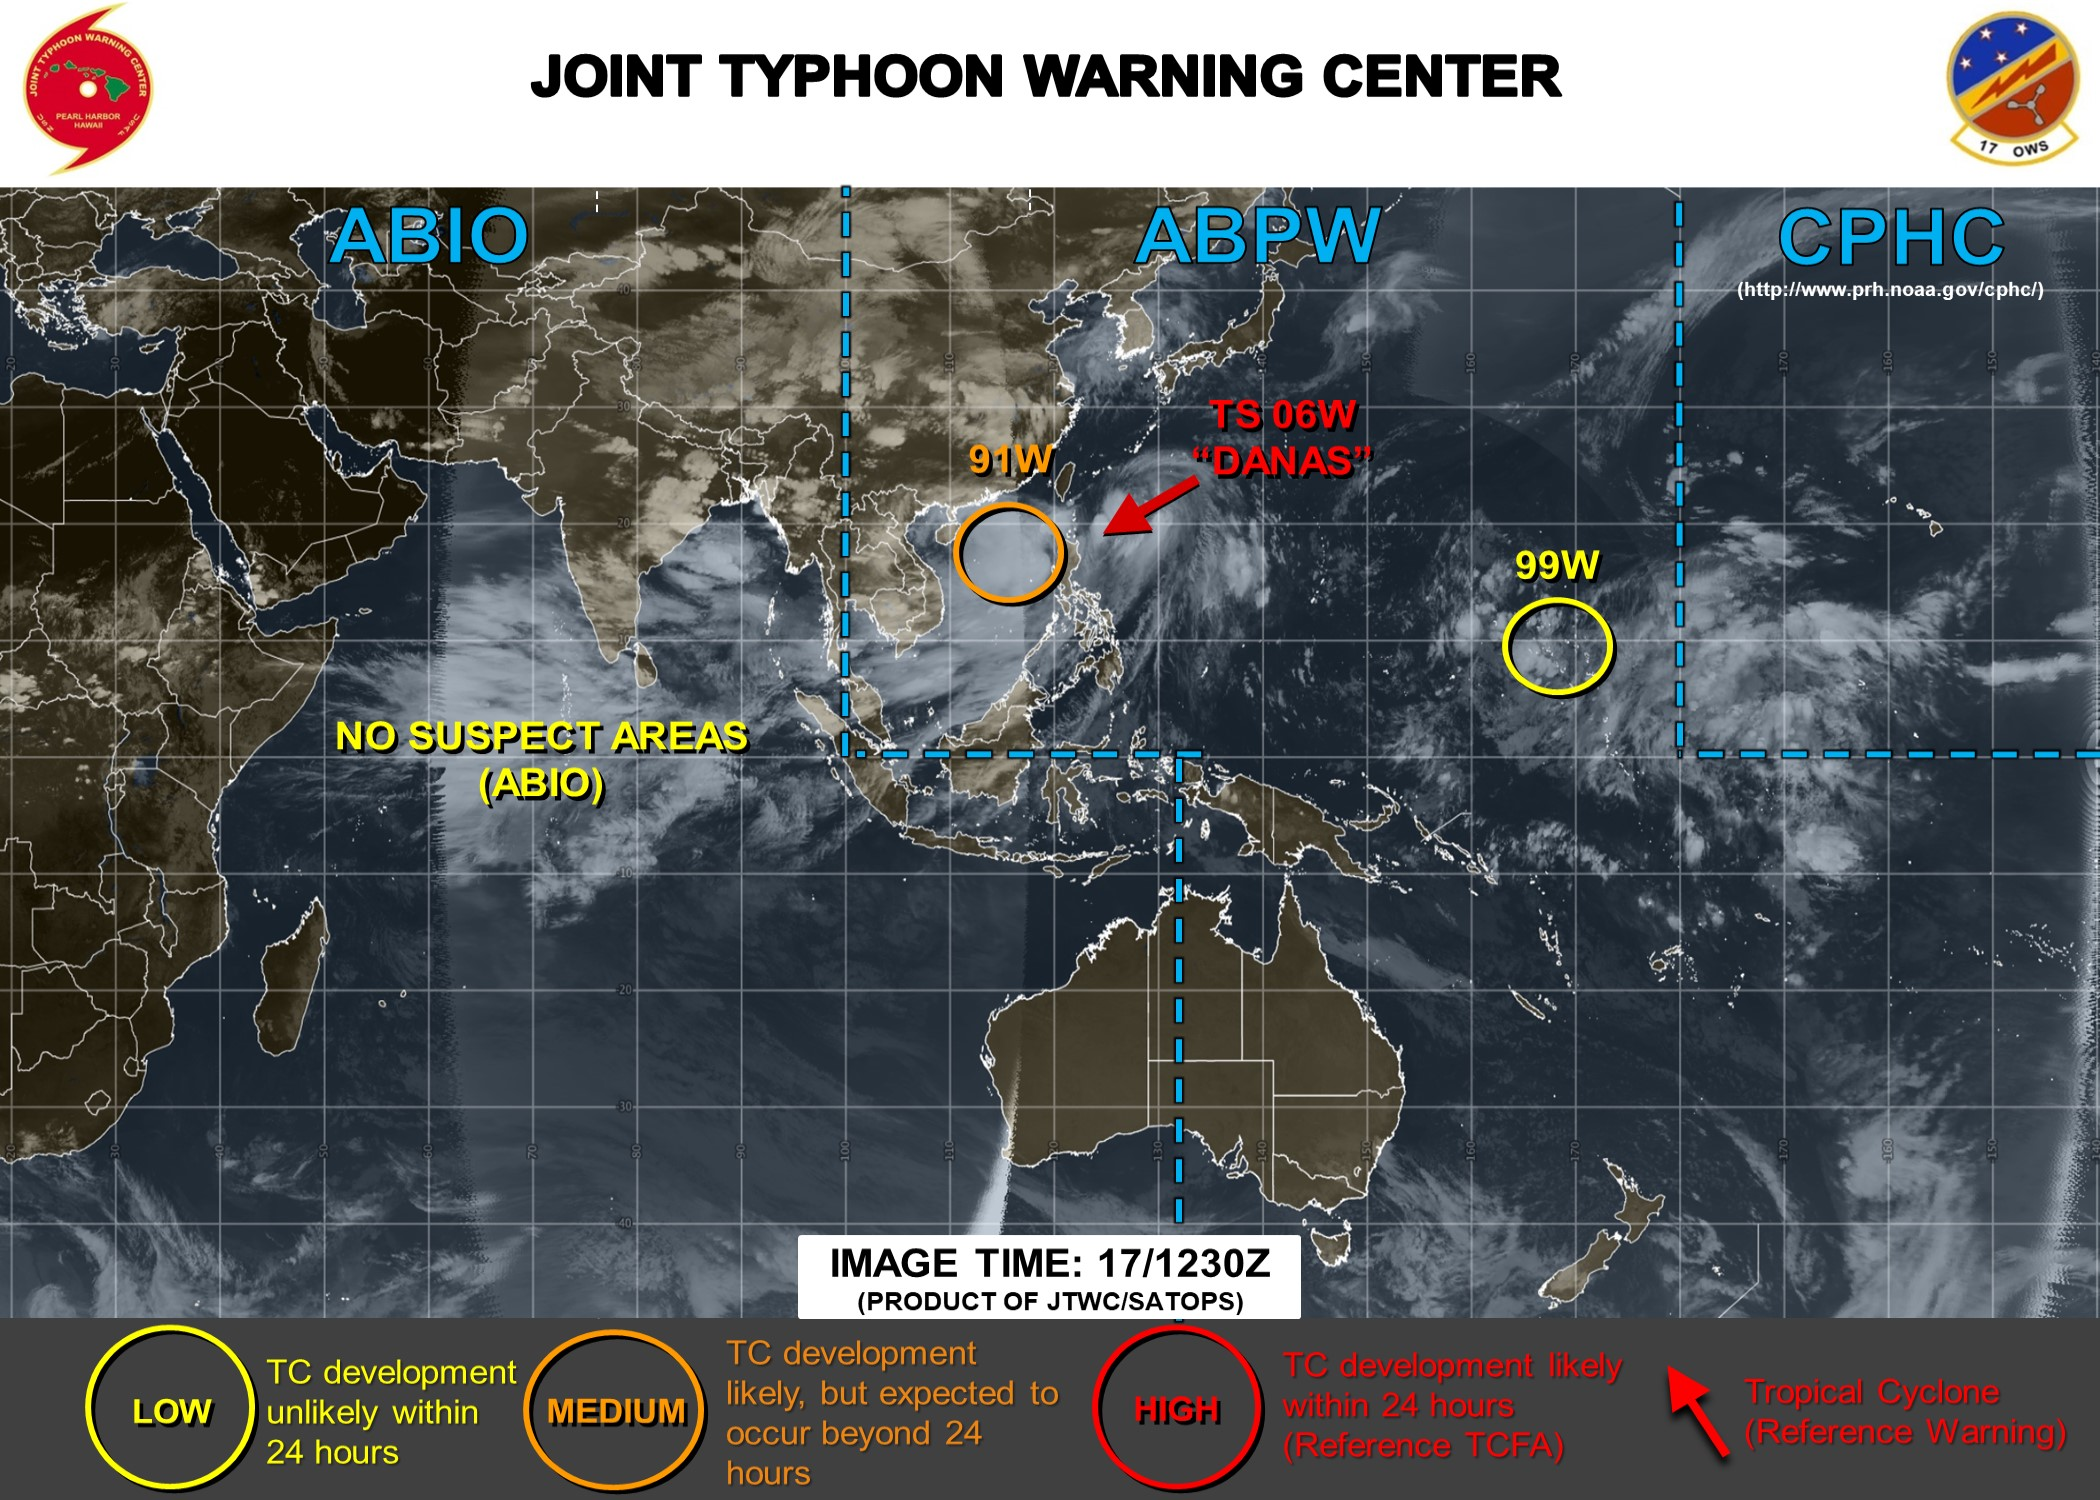 TS DANAS(06W) still weak whereas INVEST 91W and INVEST 99W are now being closely monitored